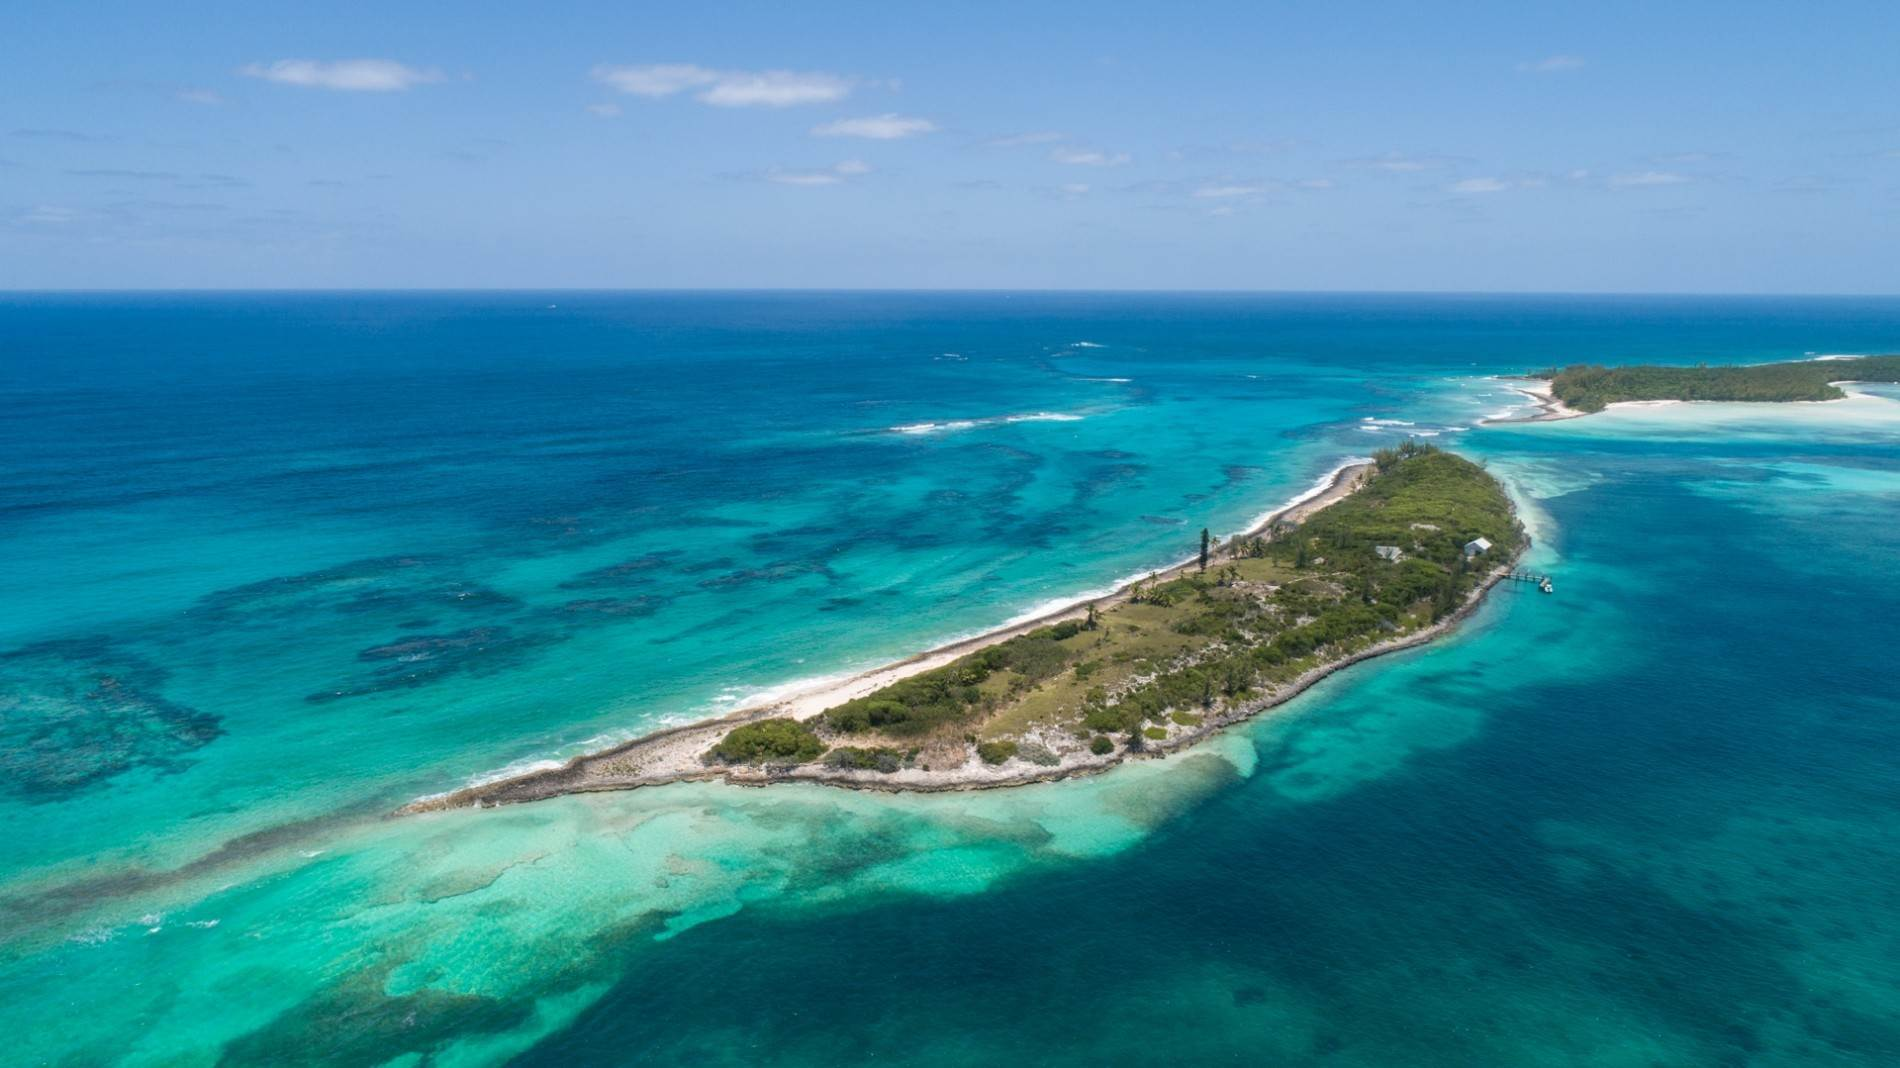 8. Private Islands for Sale at Pierre Island, A Perfect Private Retreat Island Near Harbour Island - MLS 40806 Harbour Island, Eleuthera, Bahamas